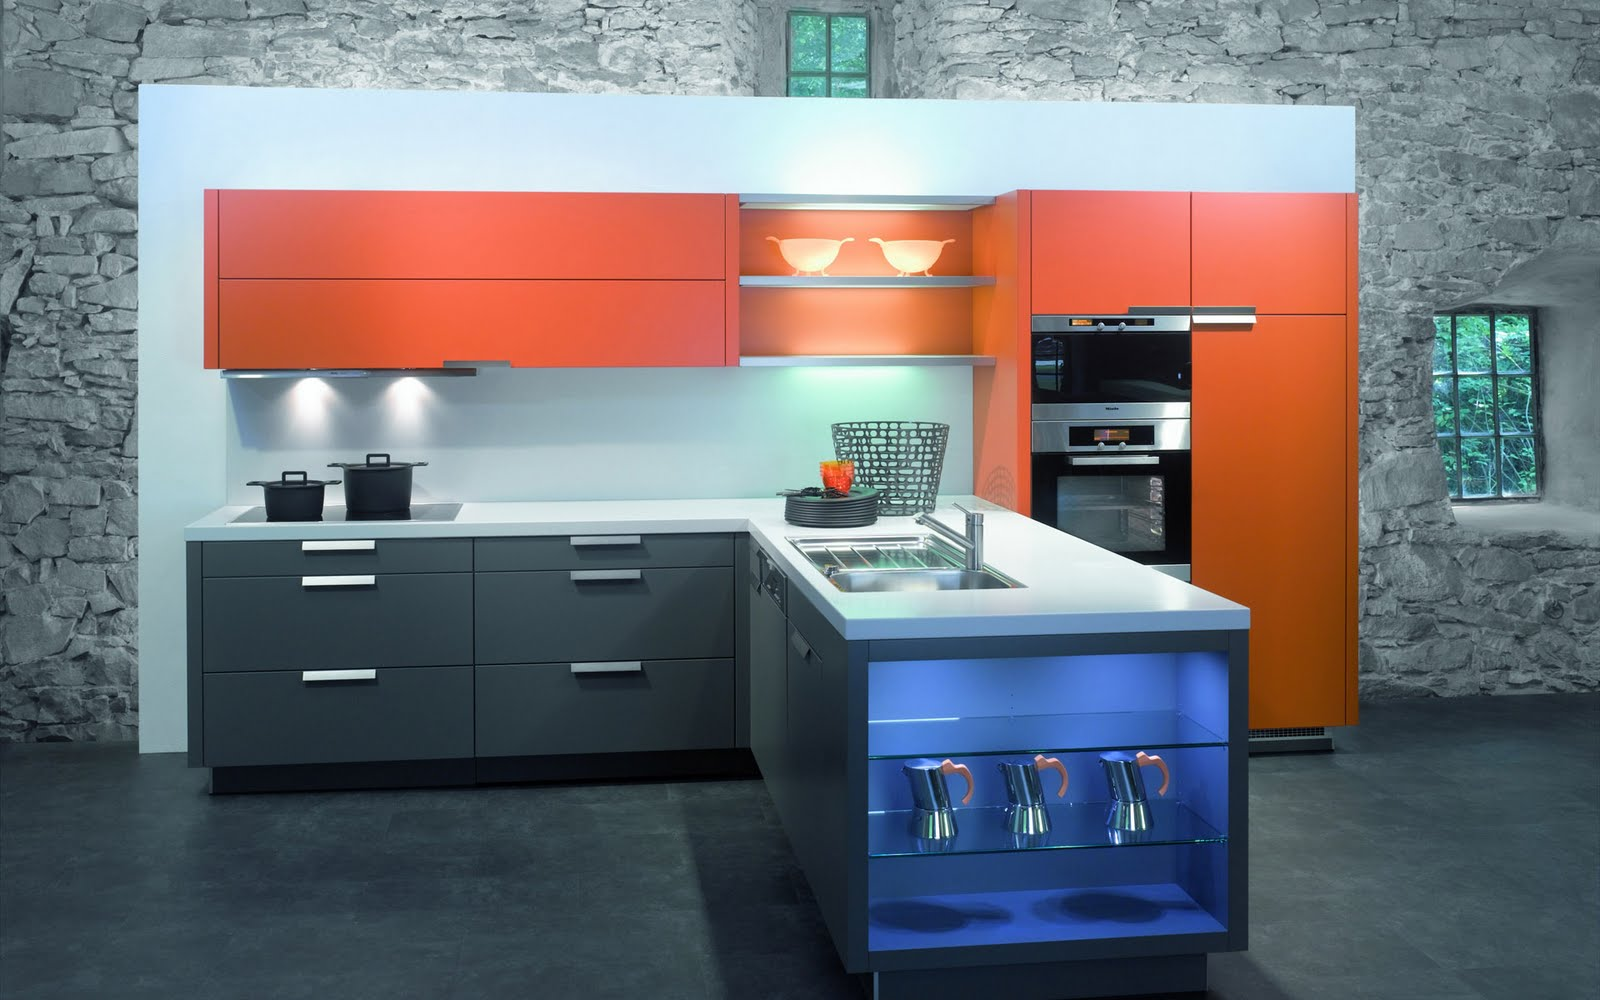 http://3.bp.blogspot.com/-XUCkswOdHBY/TinpmWK2qNI/AAAAAAAAH5s/8Oqs_ZXv_ho/s1600/www.cbaw.co.cc+-+Beautiful+Kitchens+HQ+Wallpaper+%252817%2529.jpg